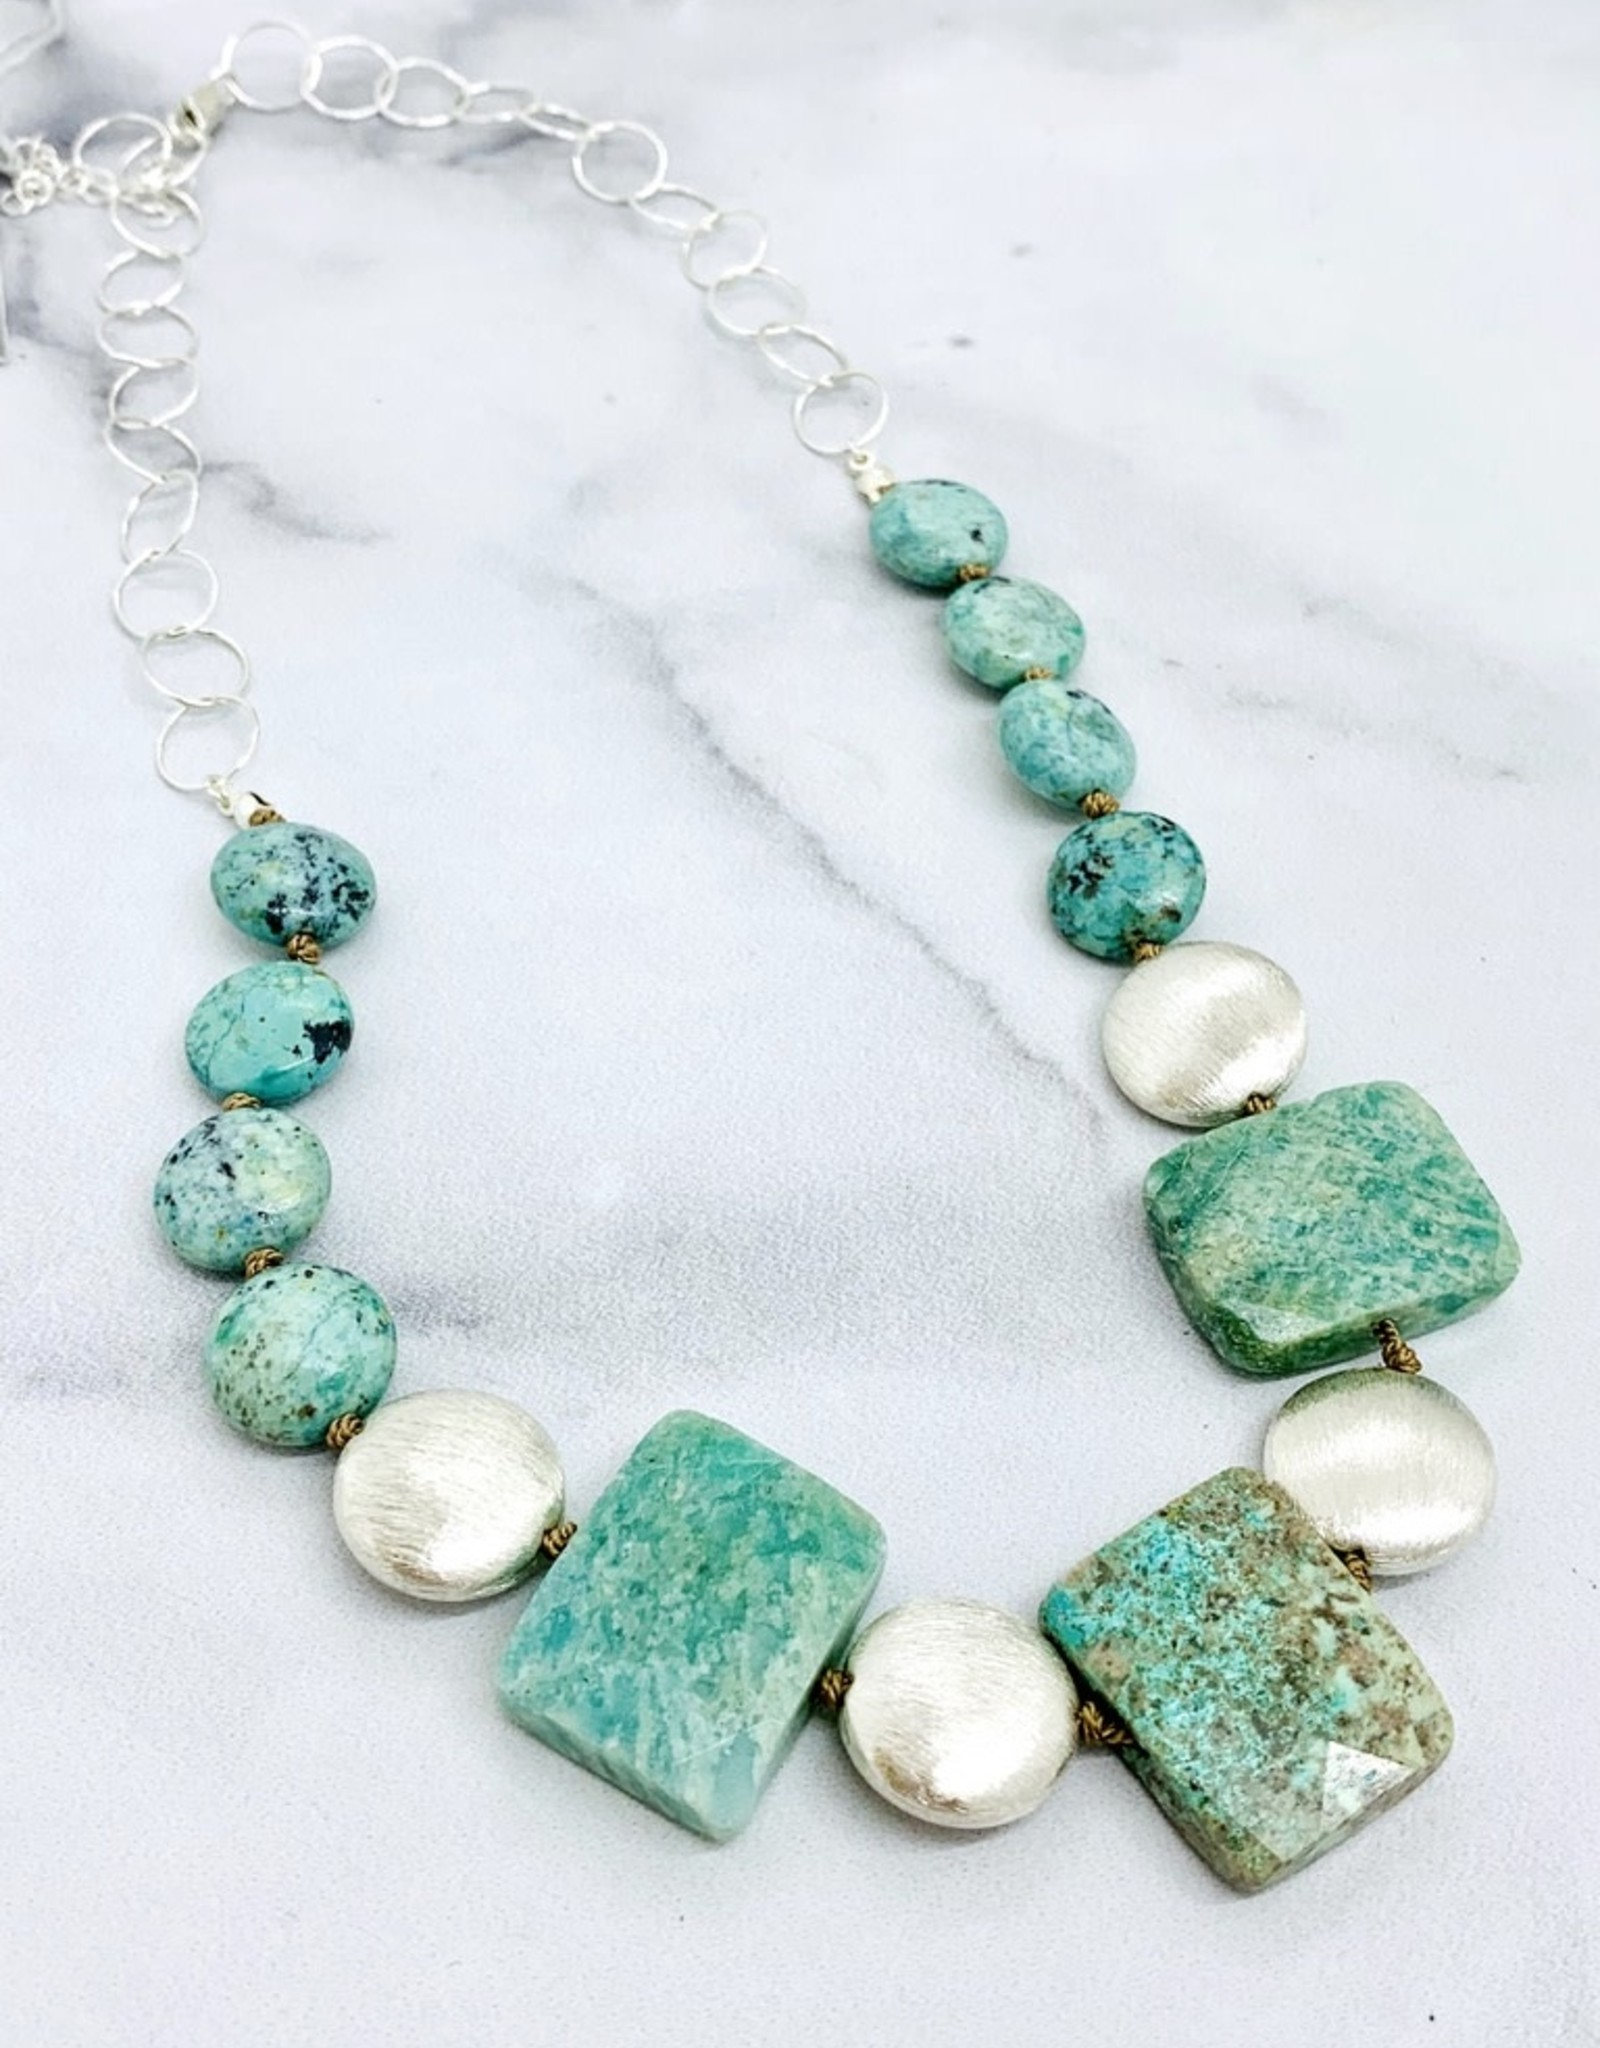 Handmade Silver Necklace with 8 turquoise coins, 3 rectangle chrysocolla, 4 large brushed coins